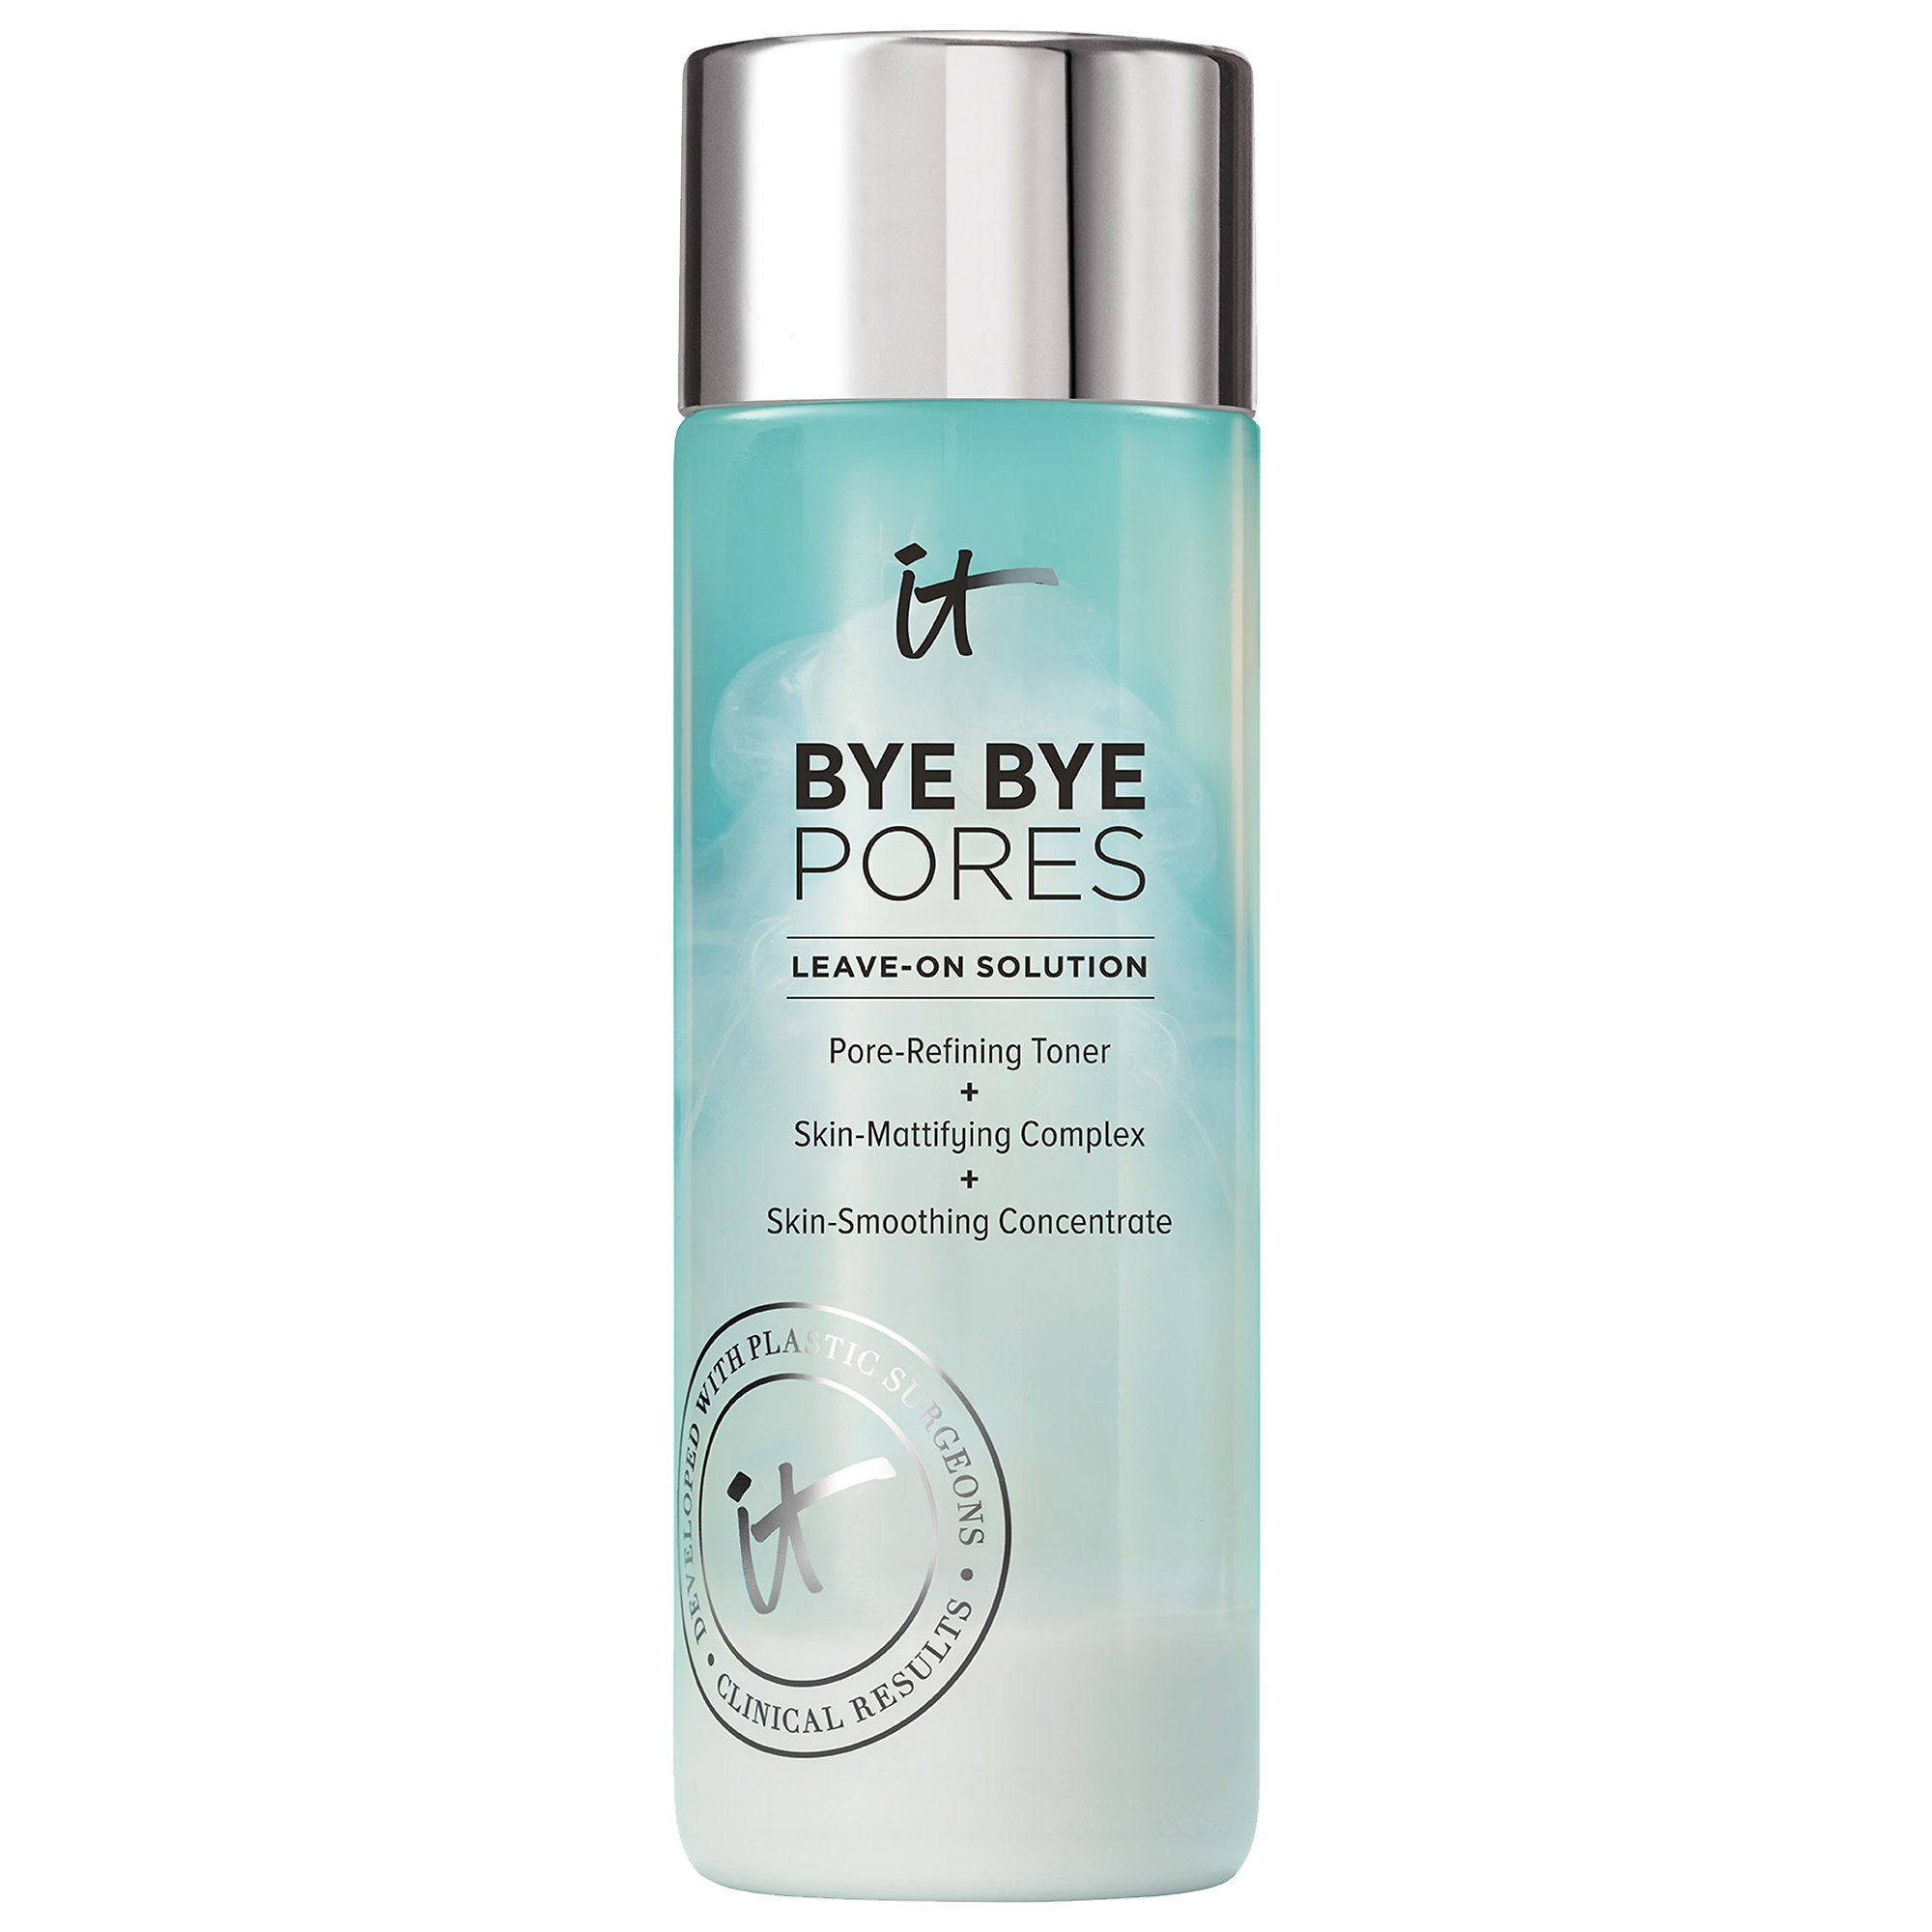 It Cosmetics - Bye Bye Pores Leave-On Solution Pore-Refining Toner